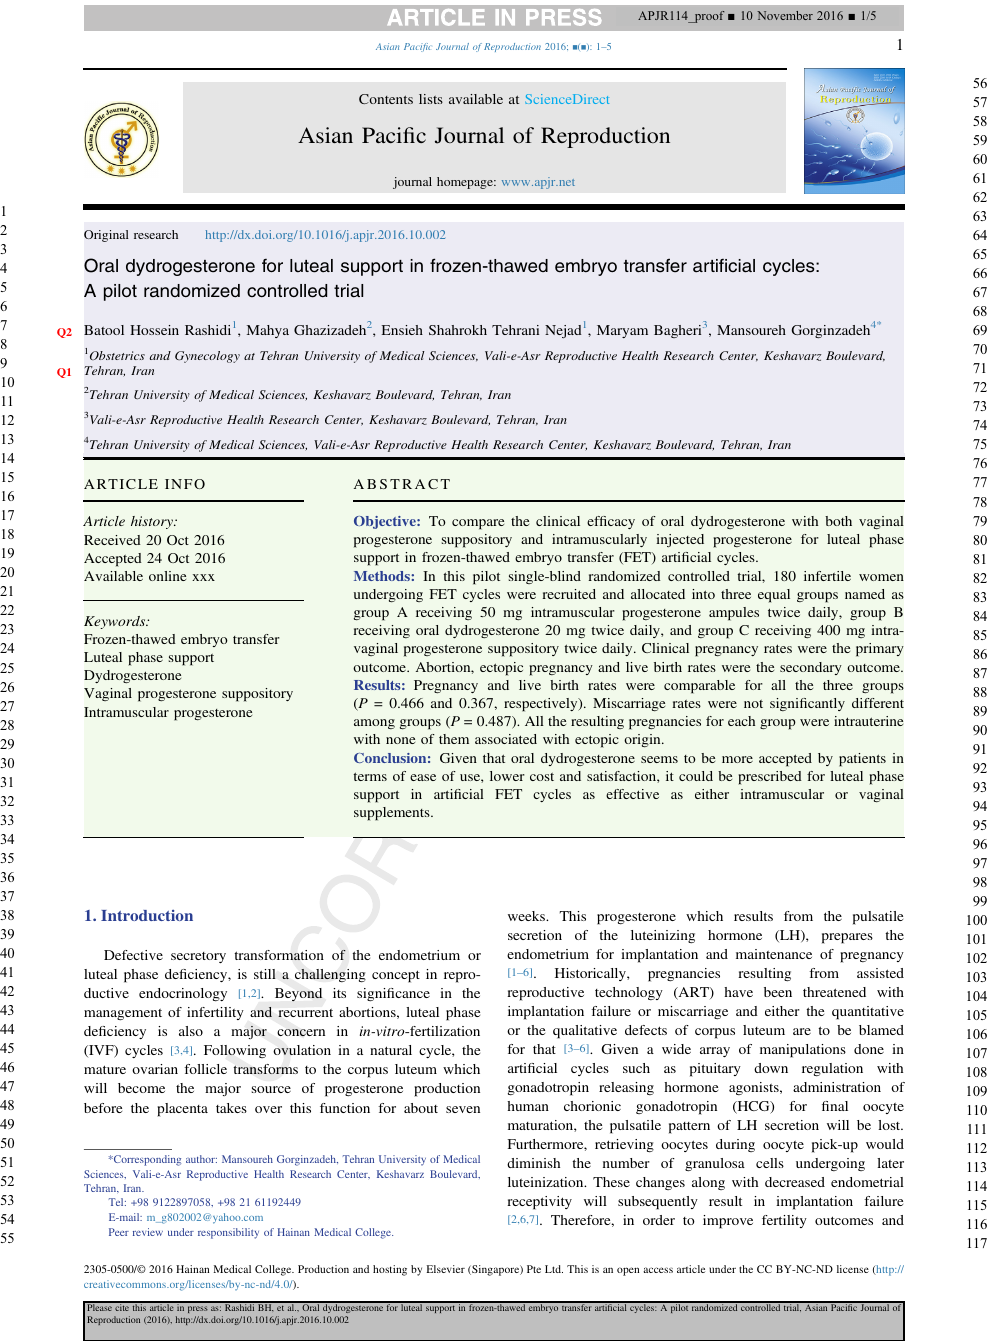 Oral dydrogesterone for luteal support in frozen-thawed